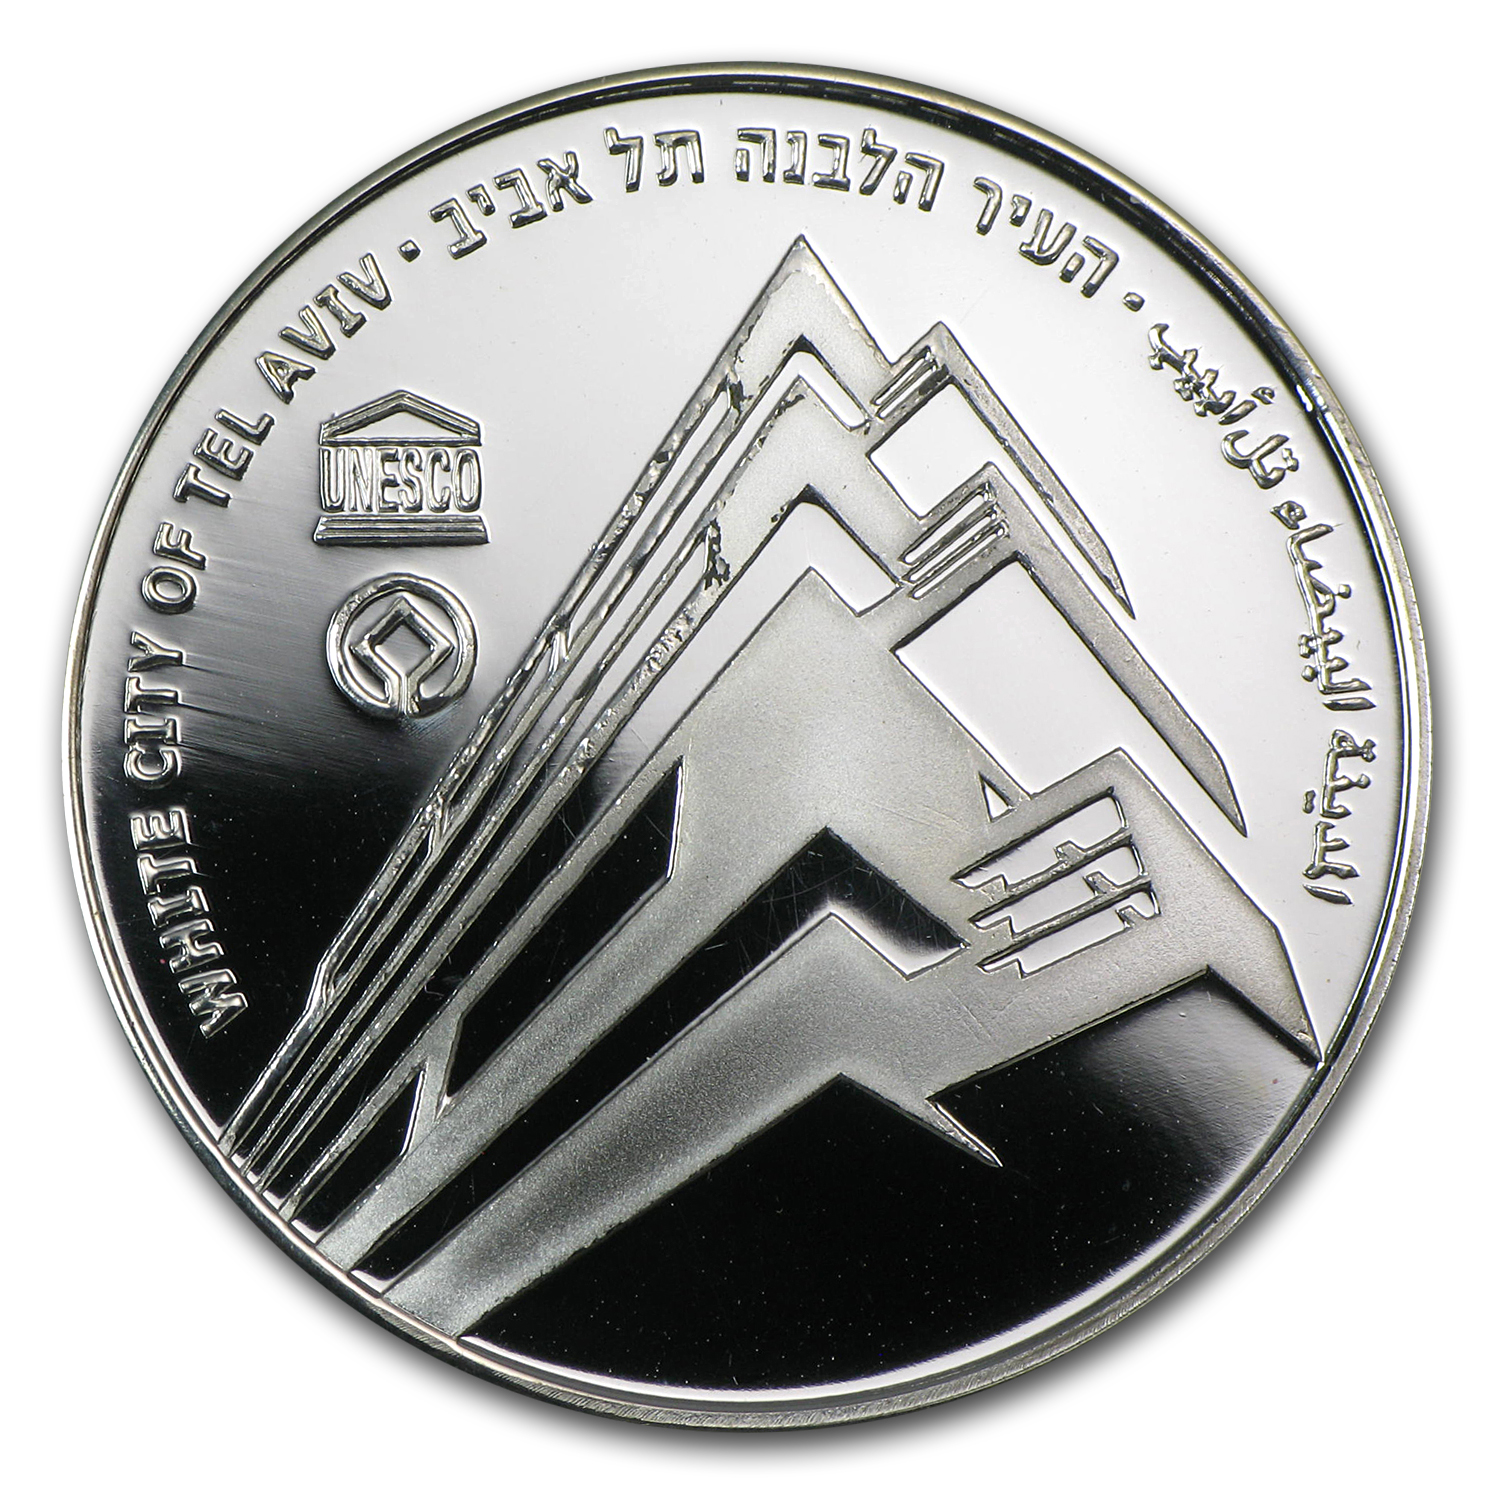 2006 Israel Tel Aviv Silver 1 NIS Proof-Like